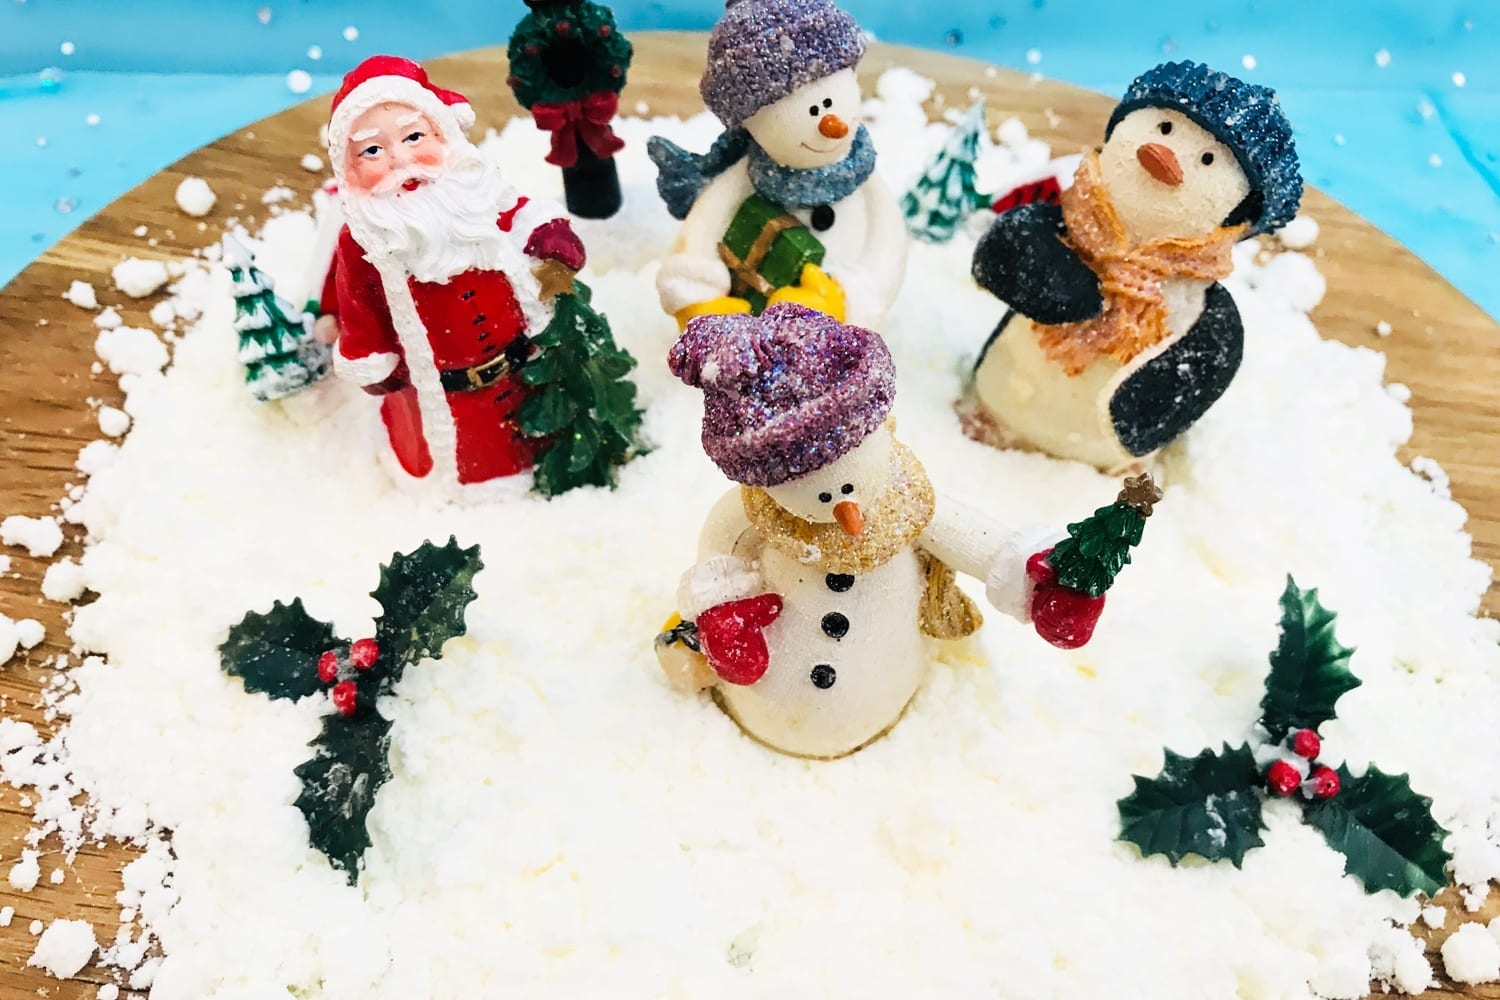 magical snow scene craft - enjoy this beautiful and easy Christmas craft with the kids